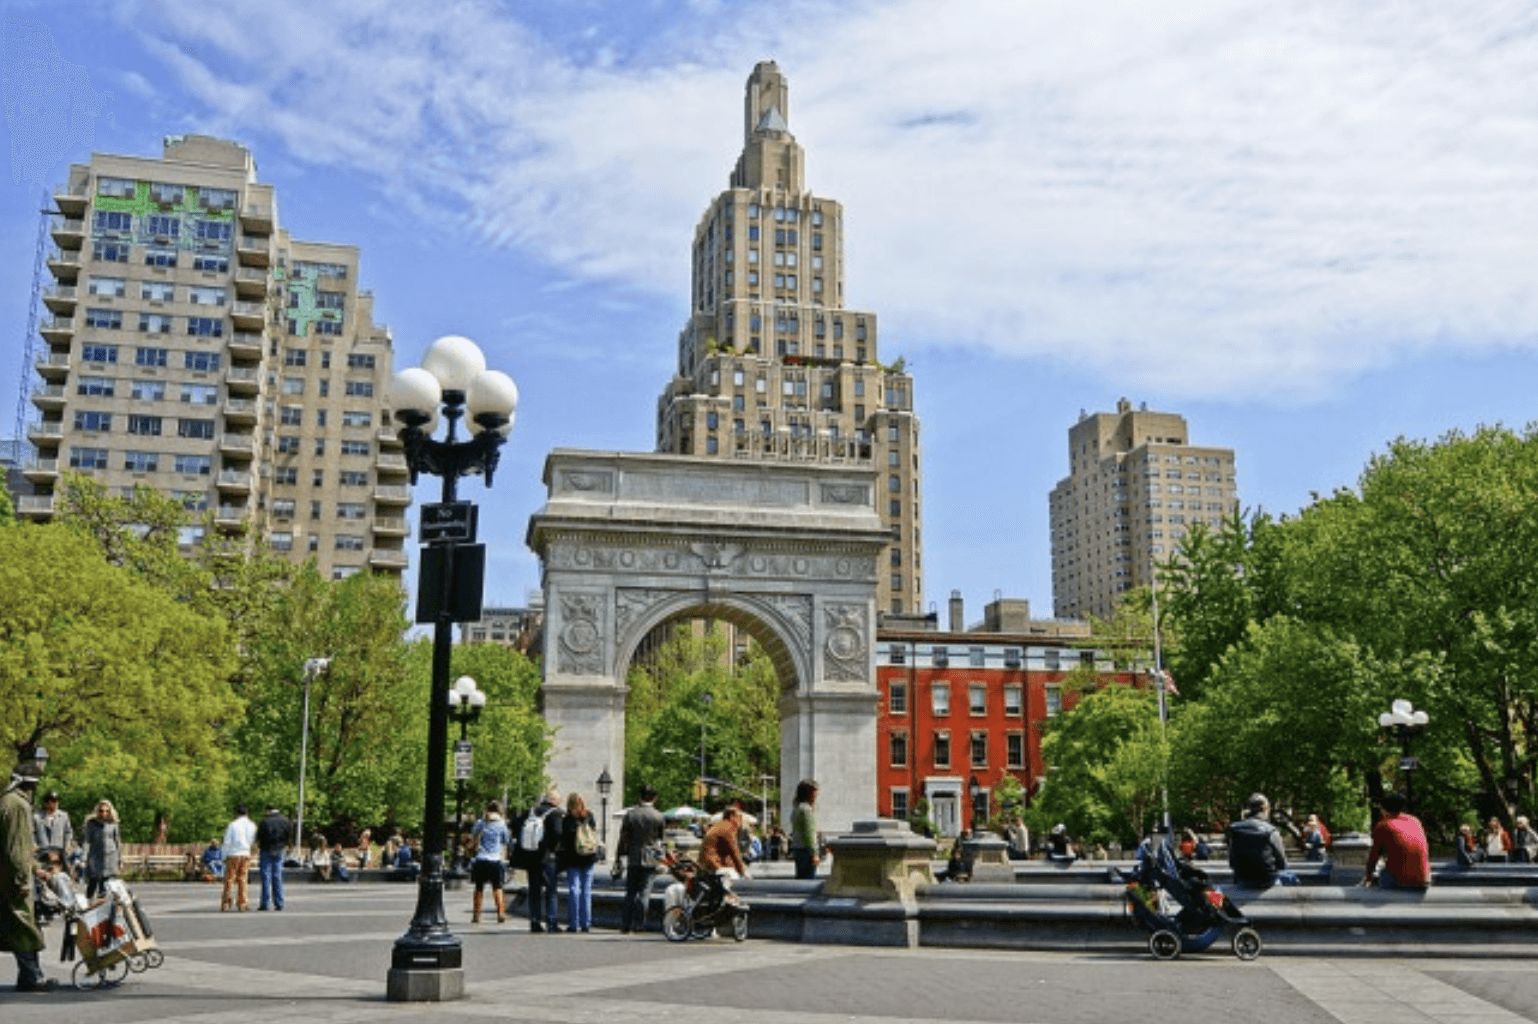 Sounds of Washington Square Park